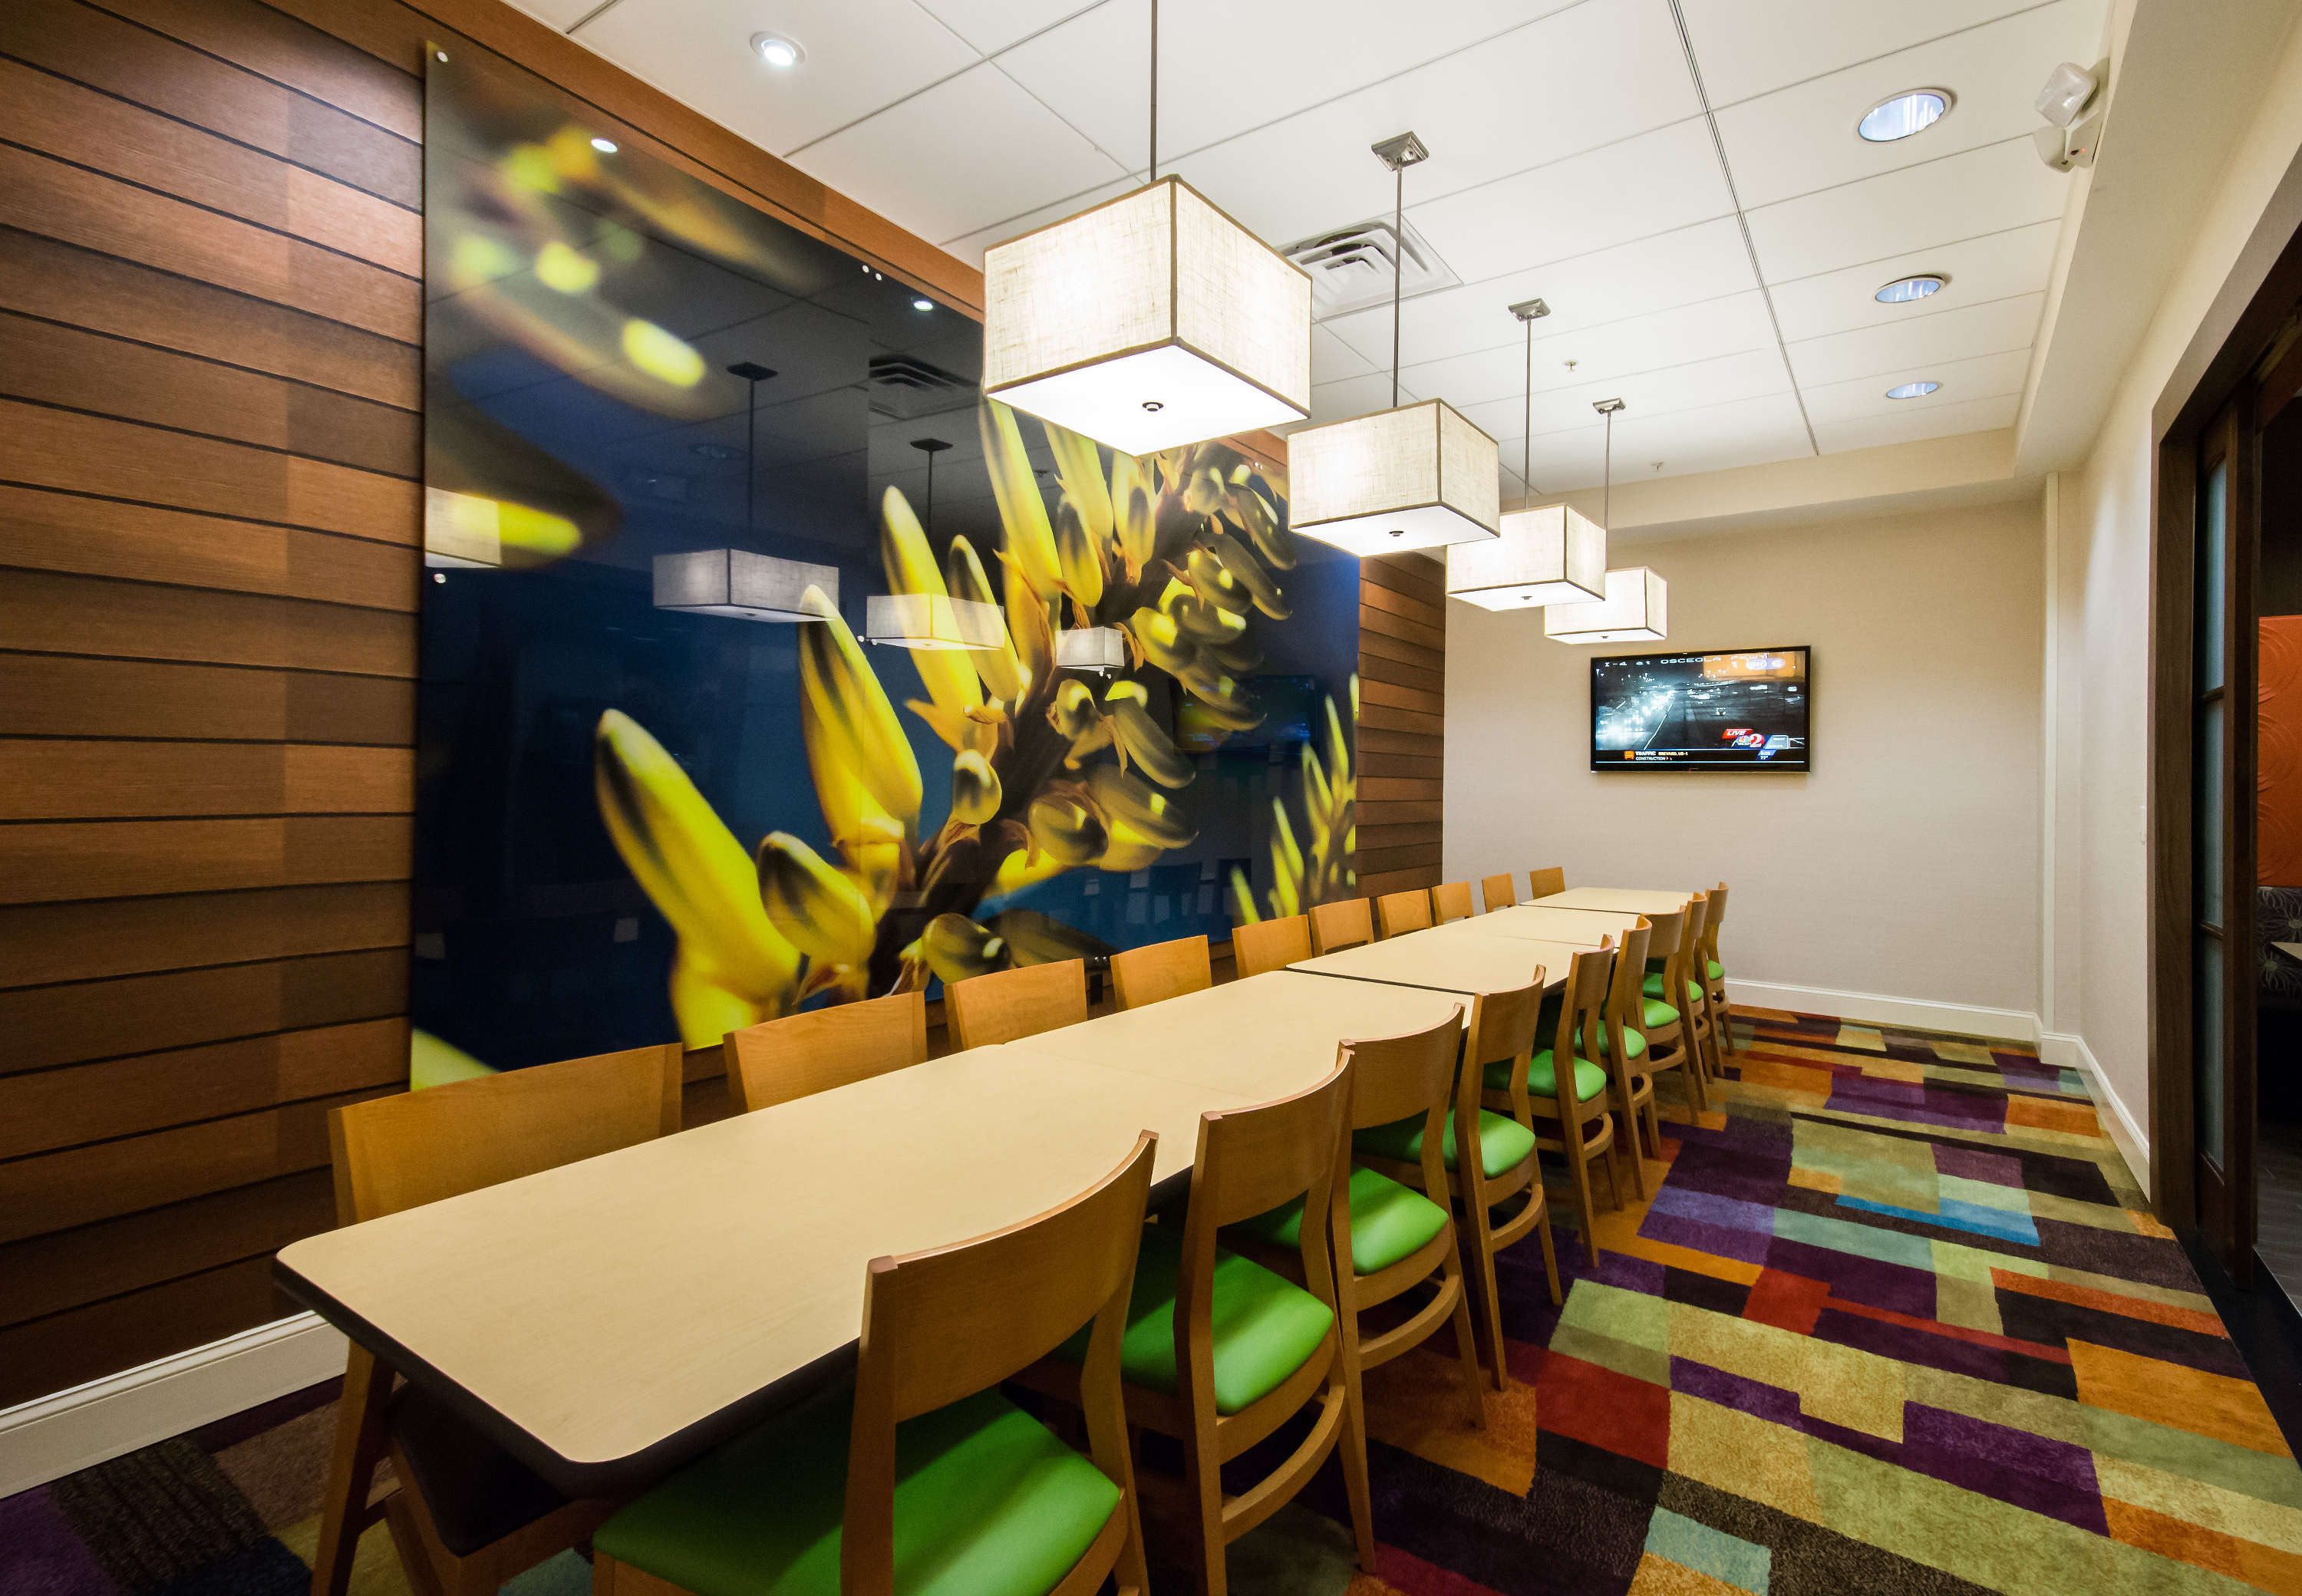 Fairfield Inn & Suites by Marriott Orlando International Drive/Convention Center image 21